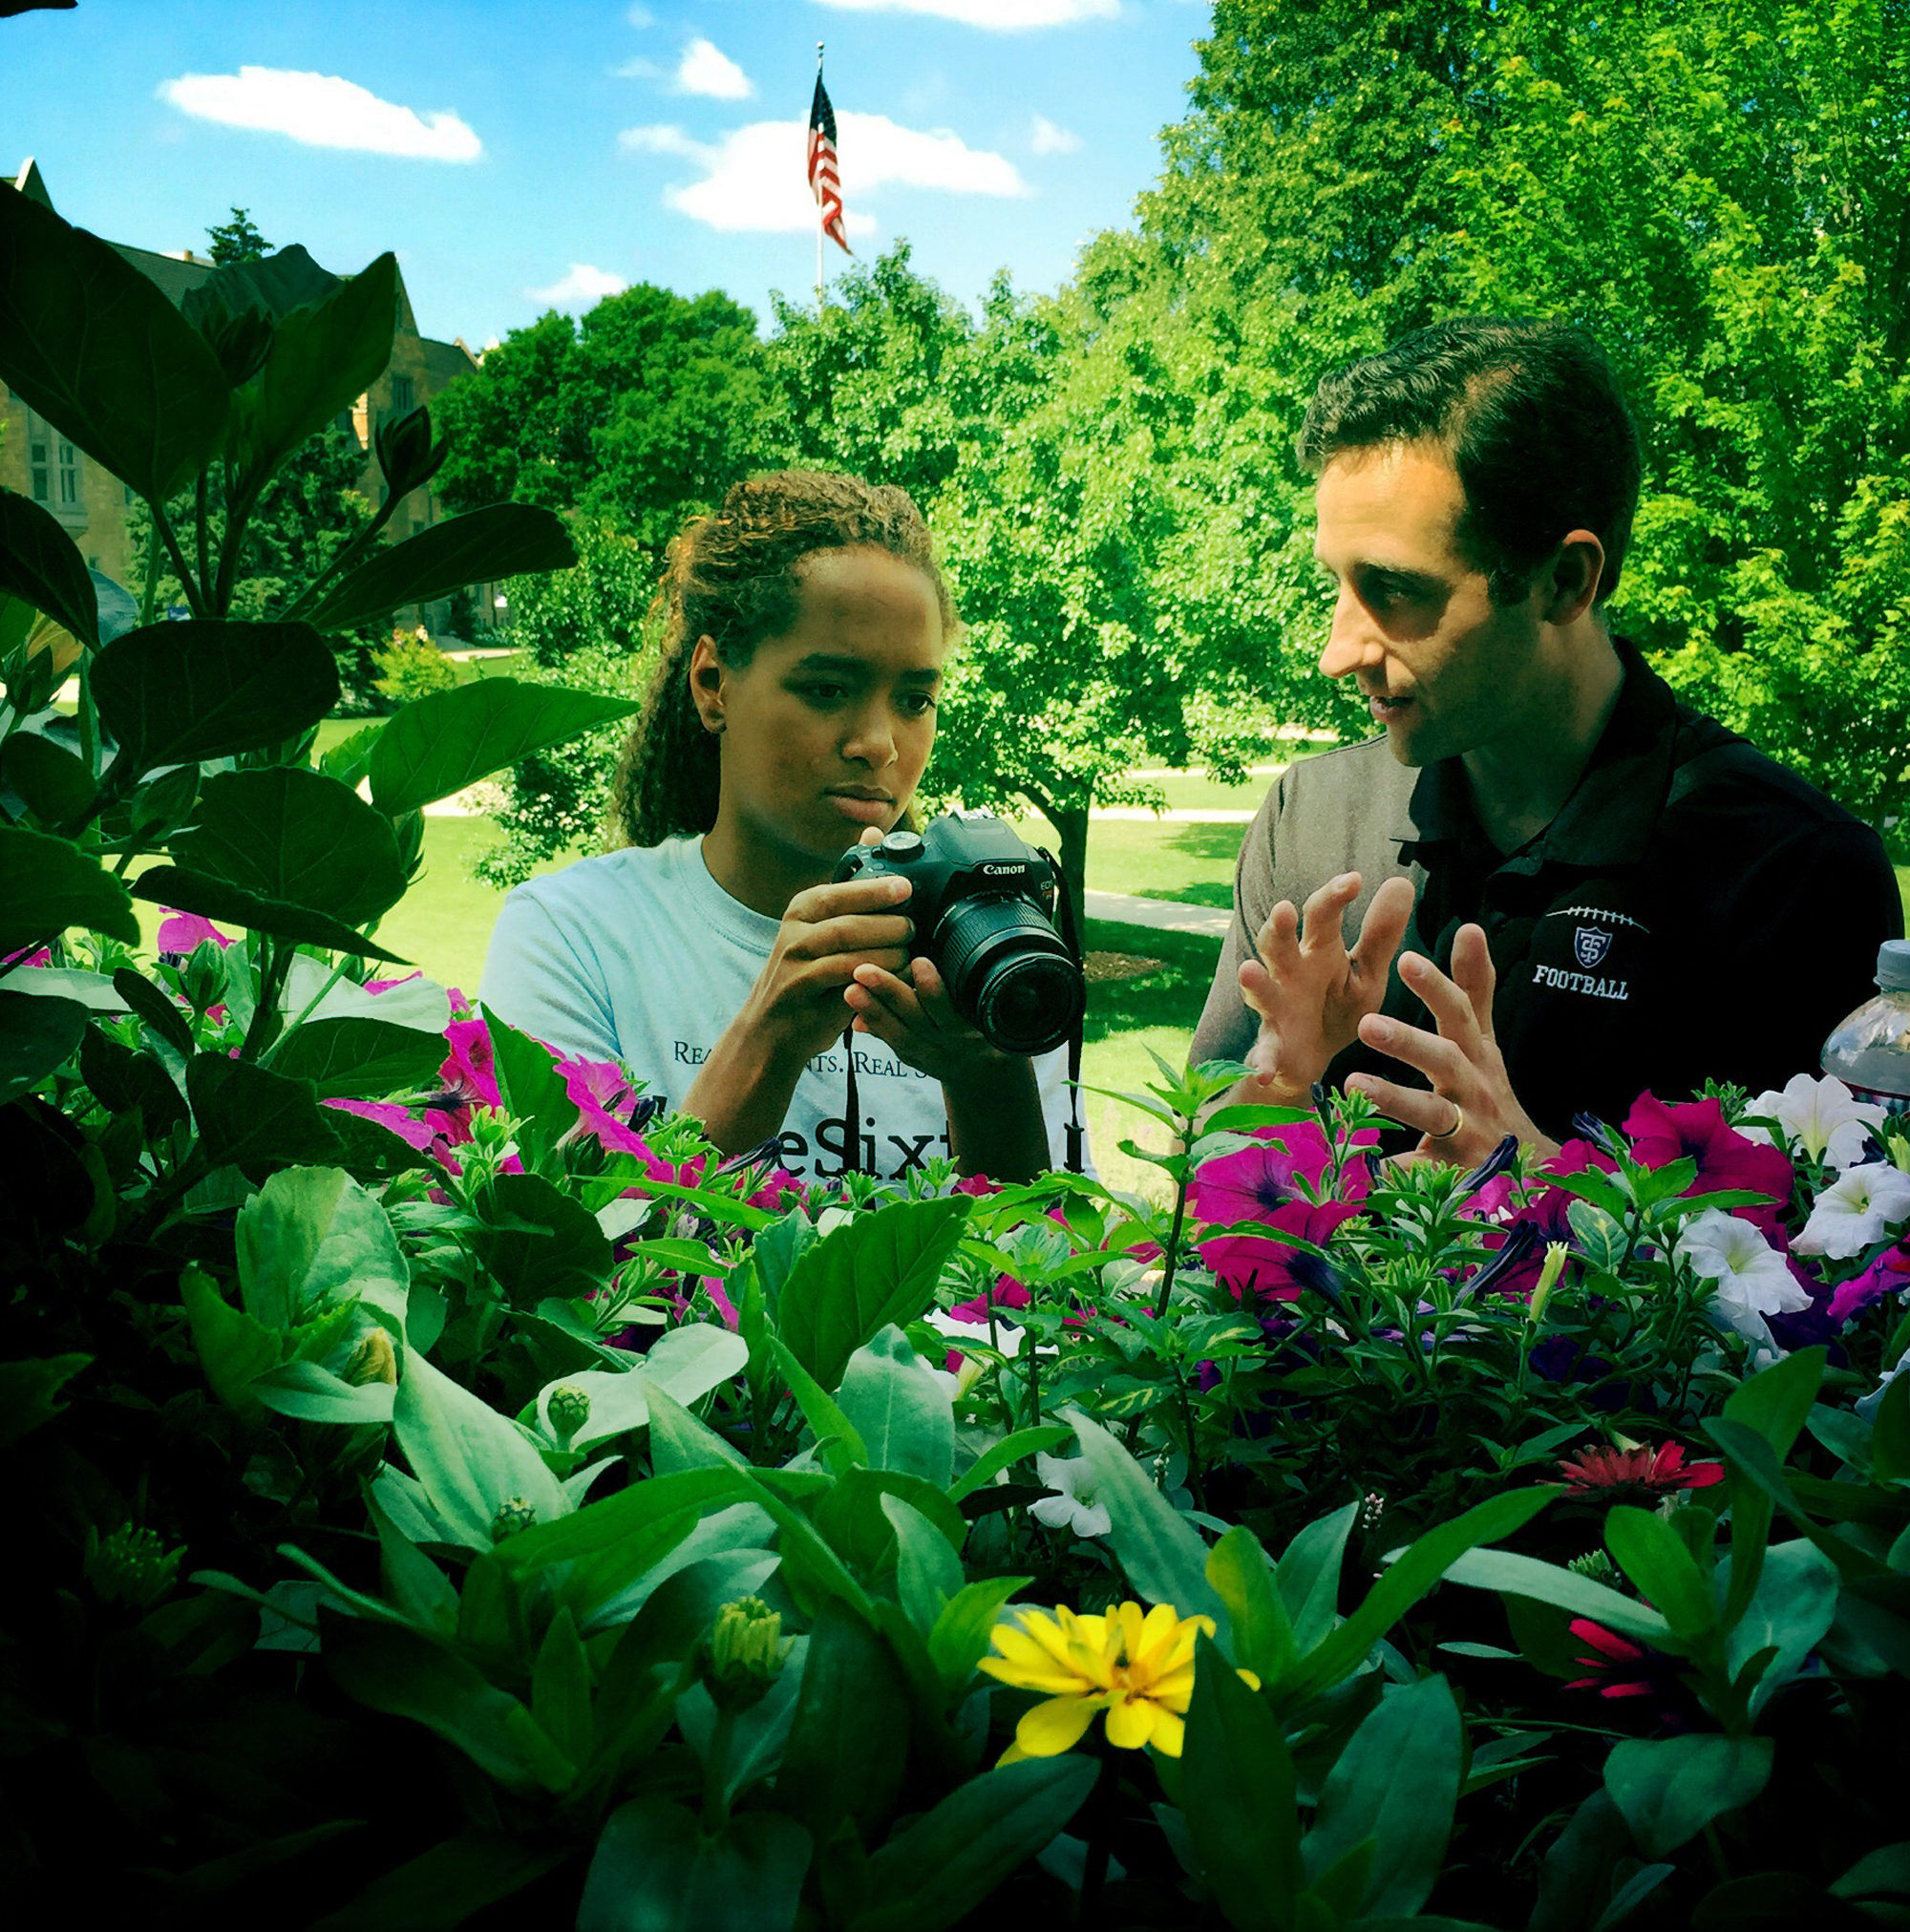 Student taking a photo of flowers with an adult next to her